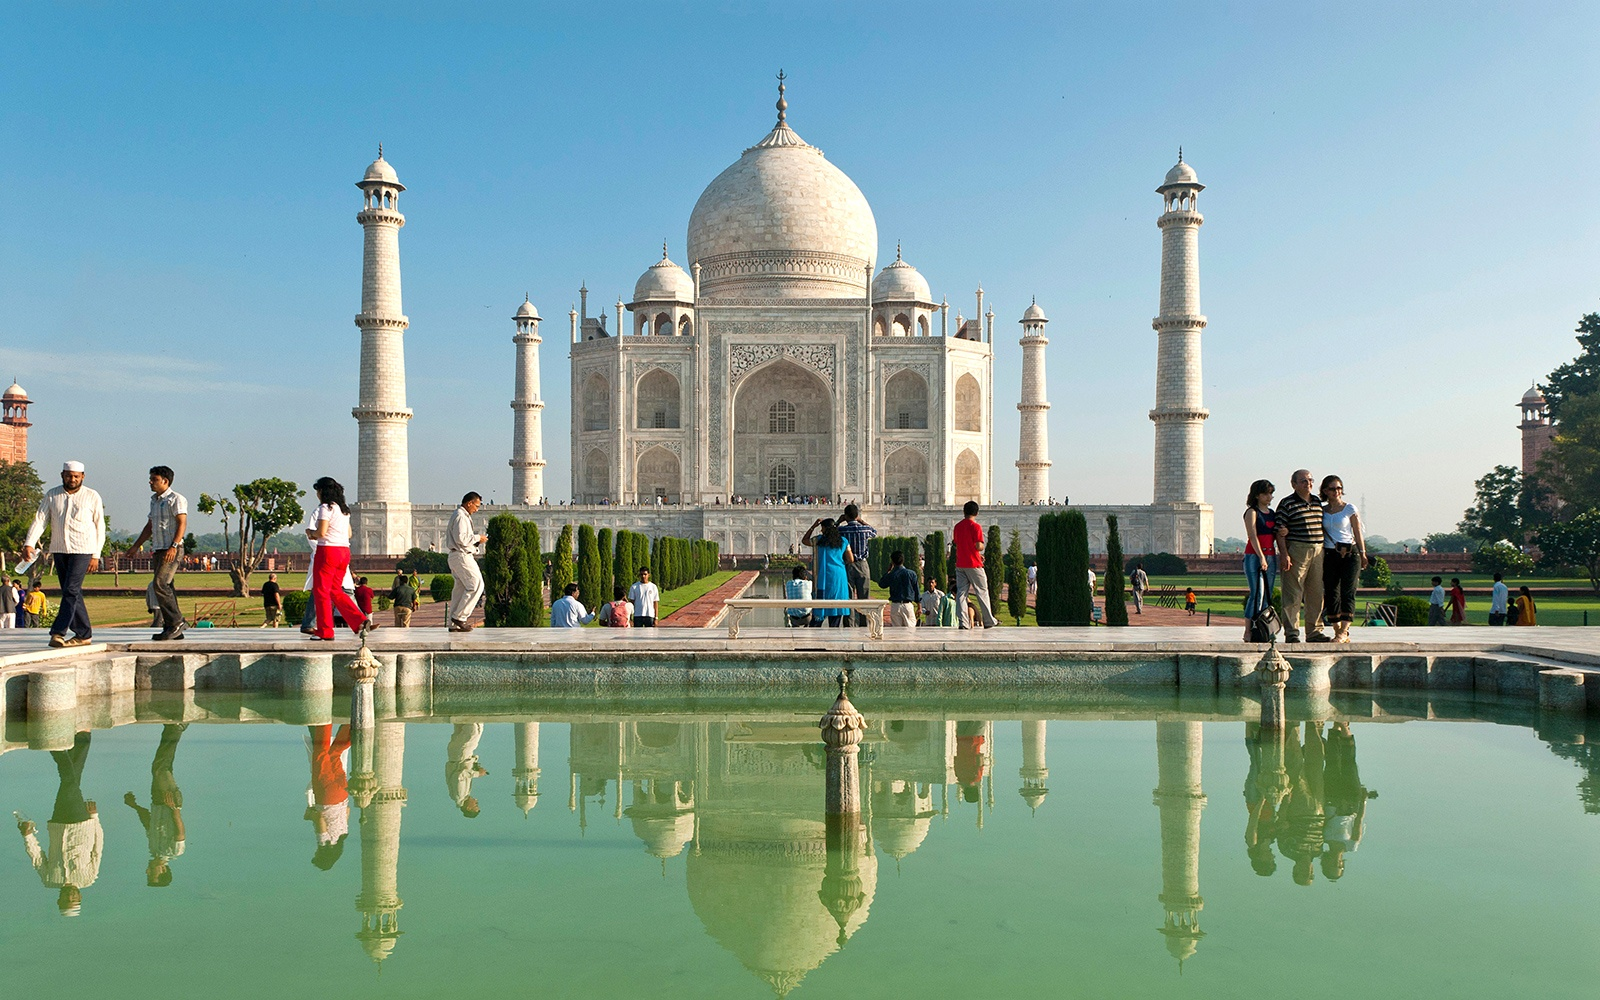 201411-w-worlds-most-visited-tourist-attractions-taj-mahal-agra